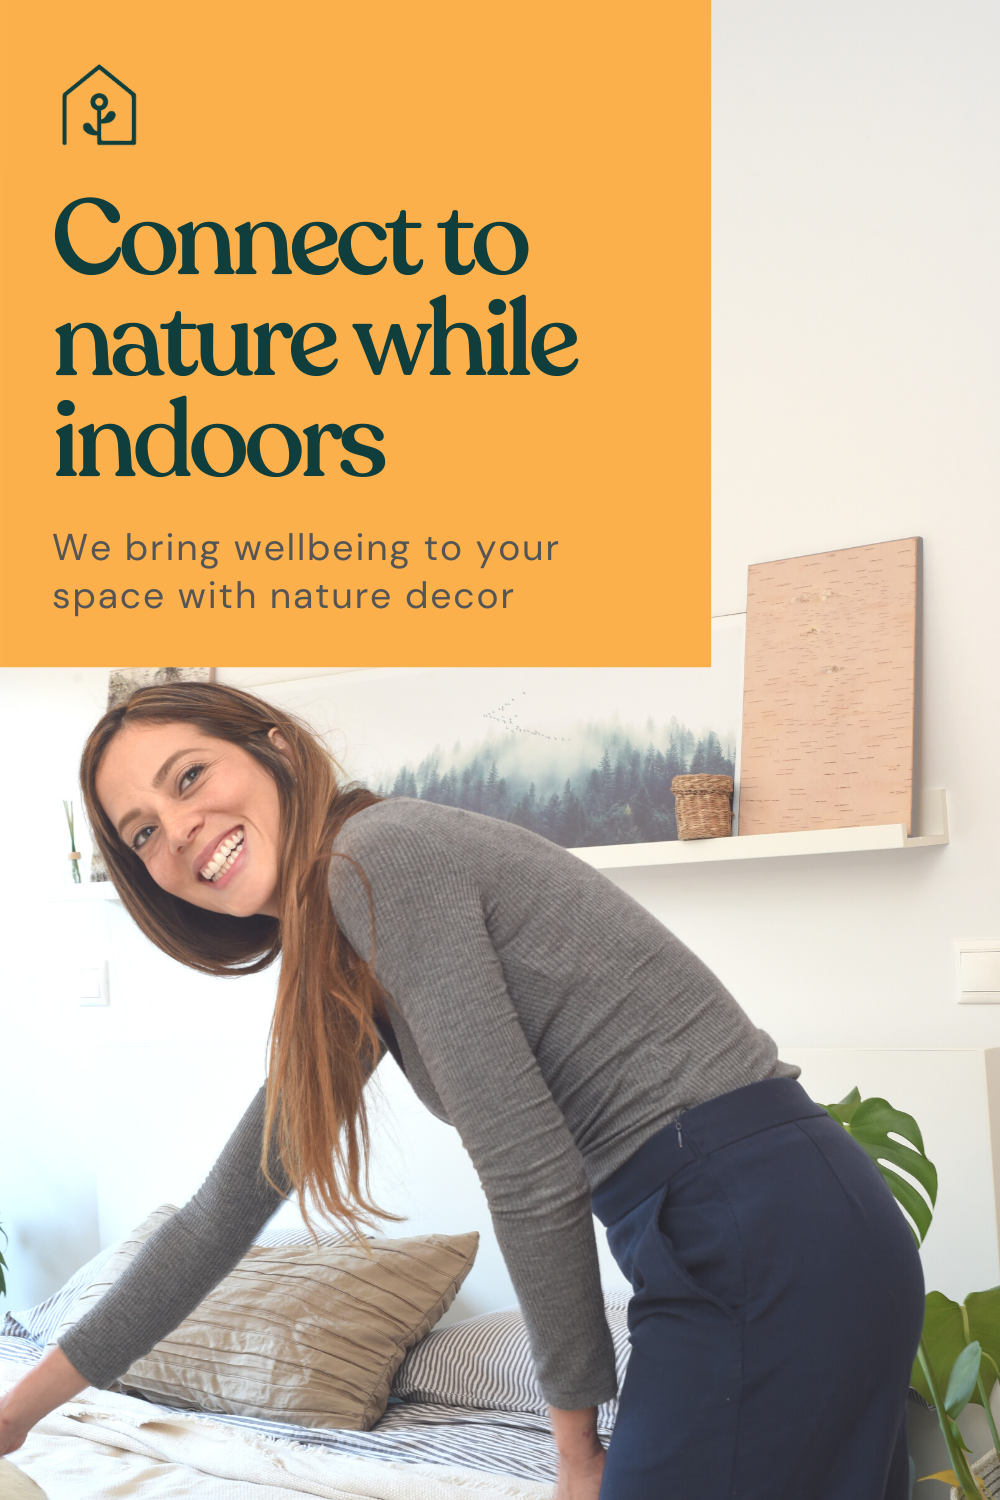 Nature wall art to inspire your nature feels while indoors. Find your options at Forest Homes.  #natural #naturelovers #natureinspired #naturalliving #natureatheart #naturalboost #natureinside #natureeverywhere #positivity #natureinspired #lovenature #powerfulnature #naturedecor #naturalspaces #wellbeing #indoornature #urbannature #homedecor #interiordesign #design #interiordesigner #decoration #interior #naturaldecor #naturedecor #naturedecoration #natureinspireddecor #naturedesign